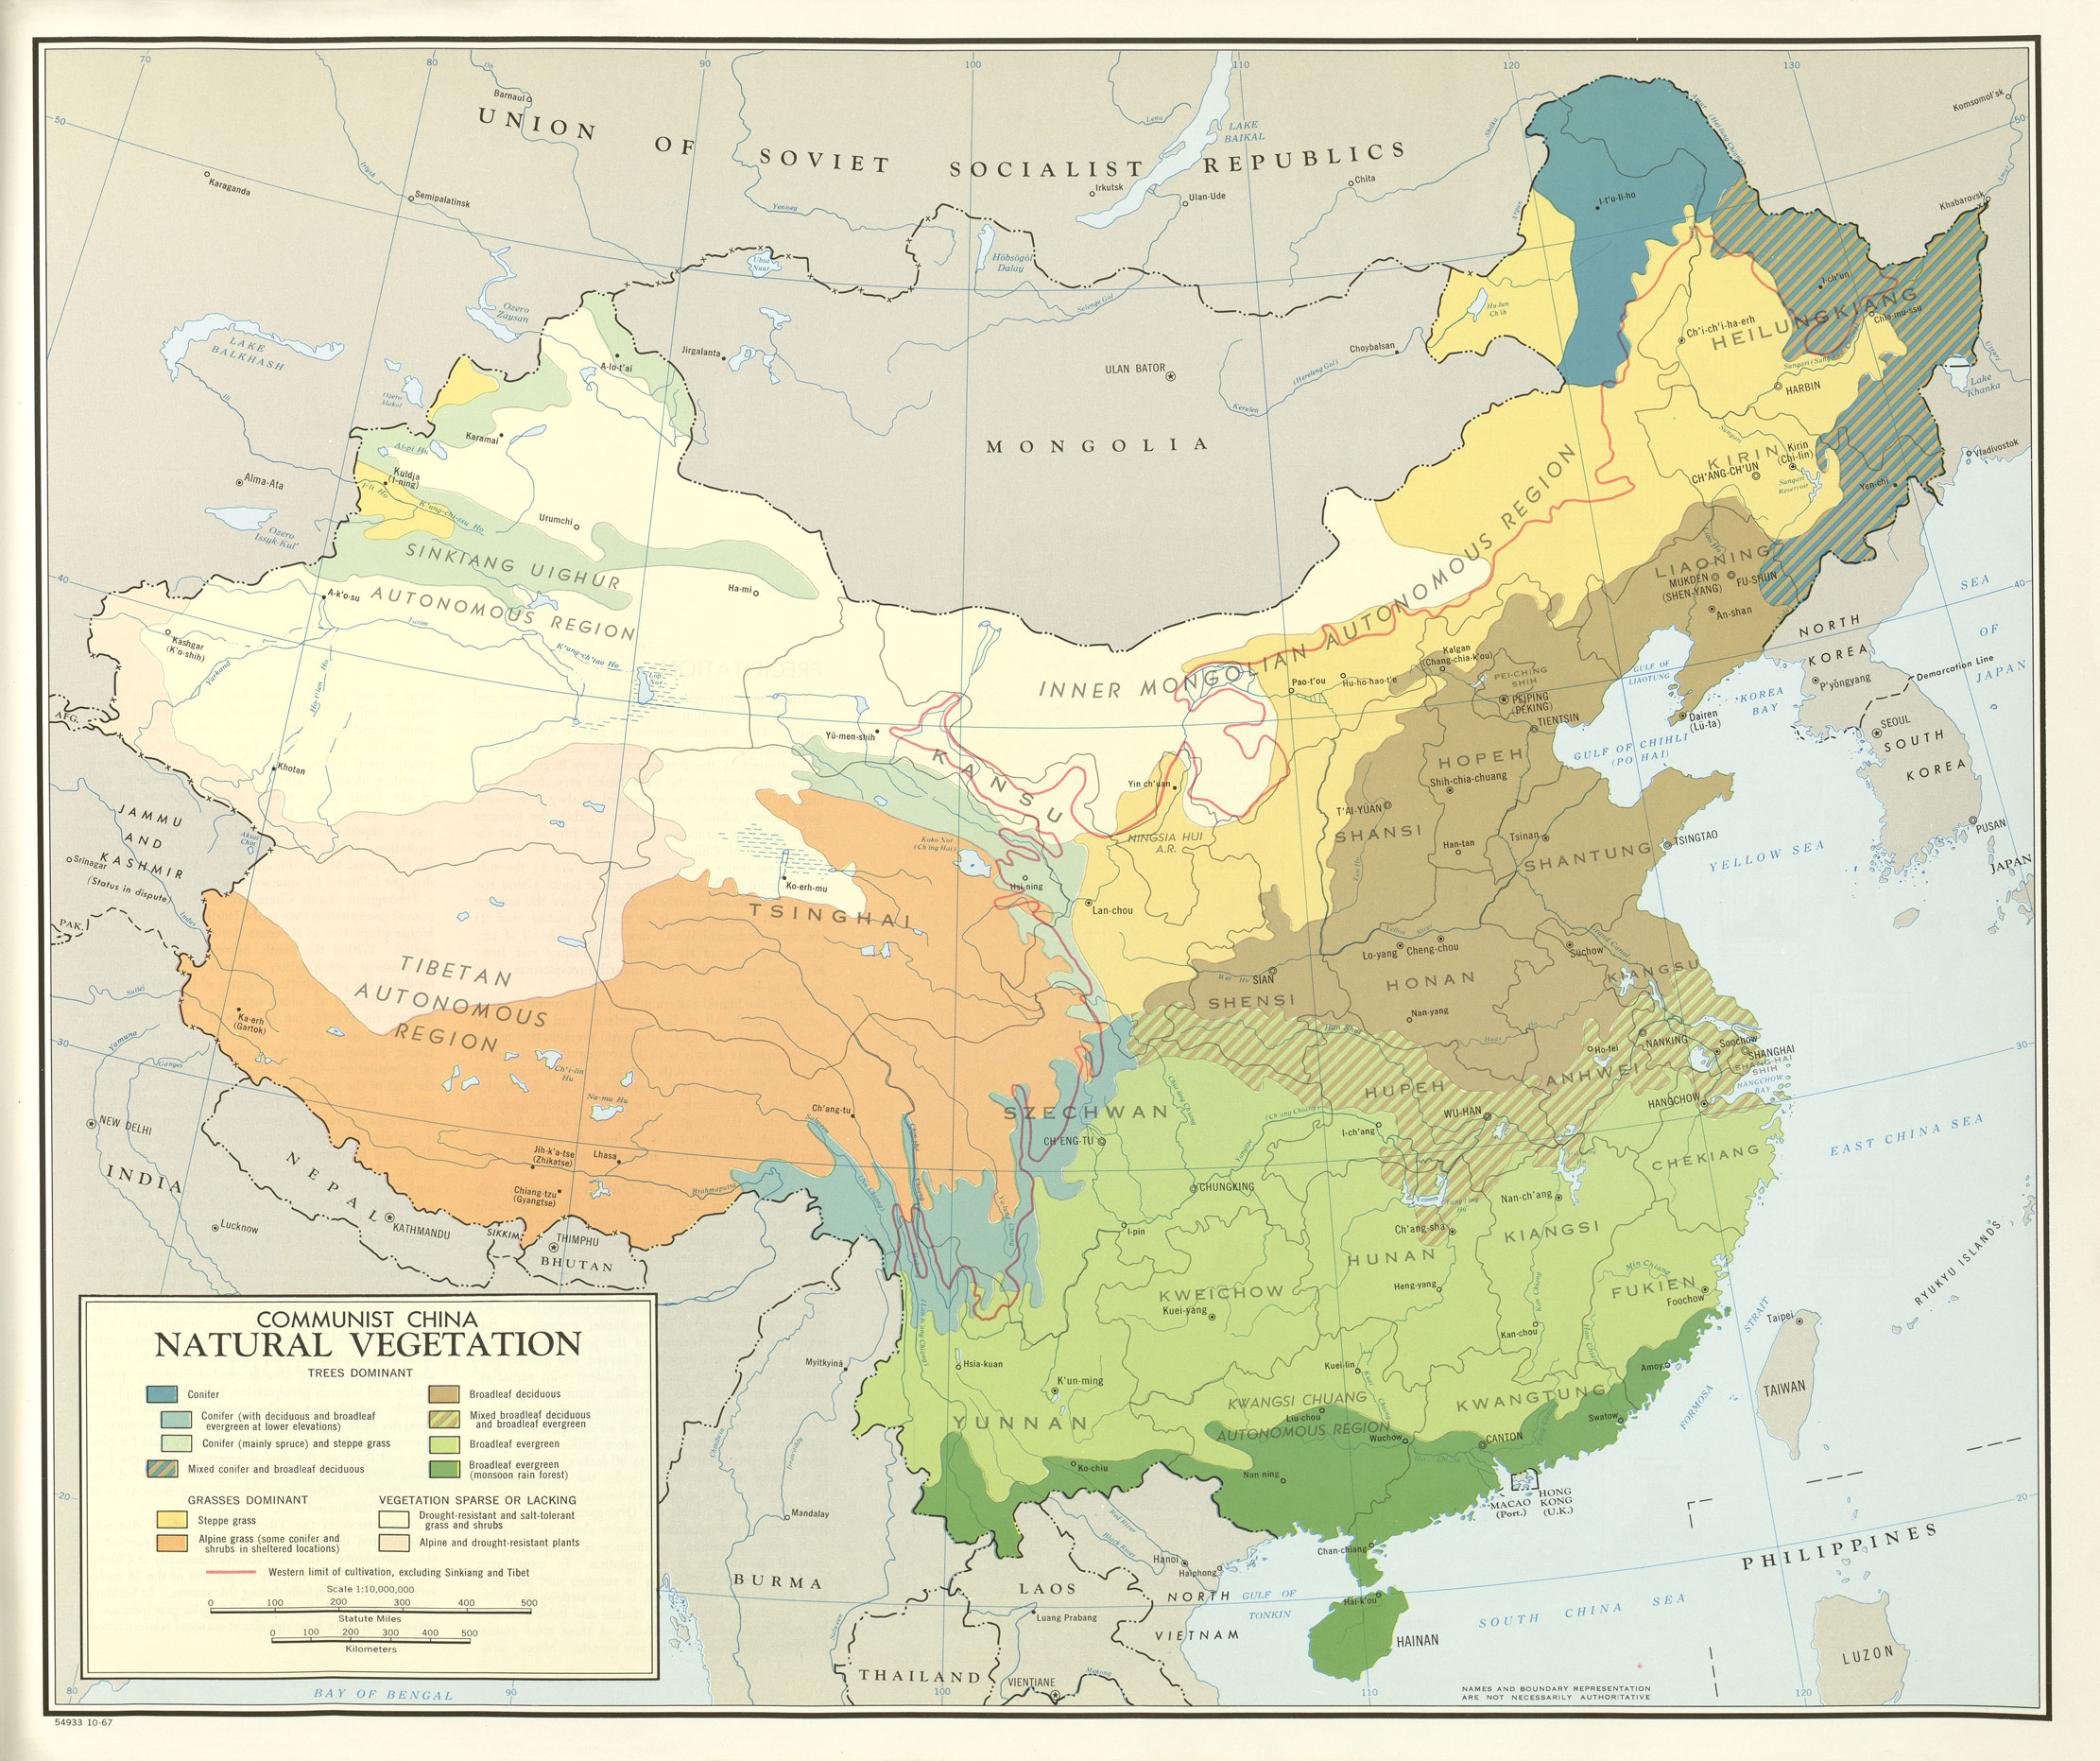 China Natural Vegetation Map large map